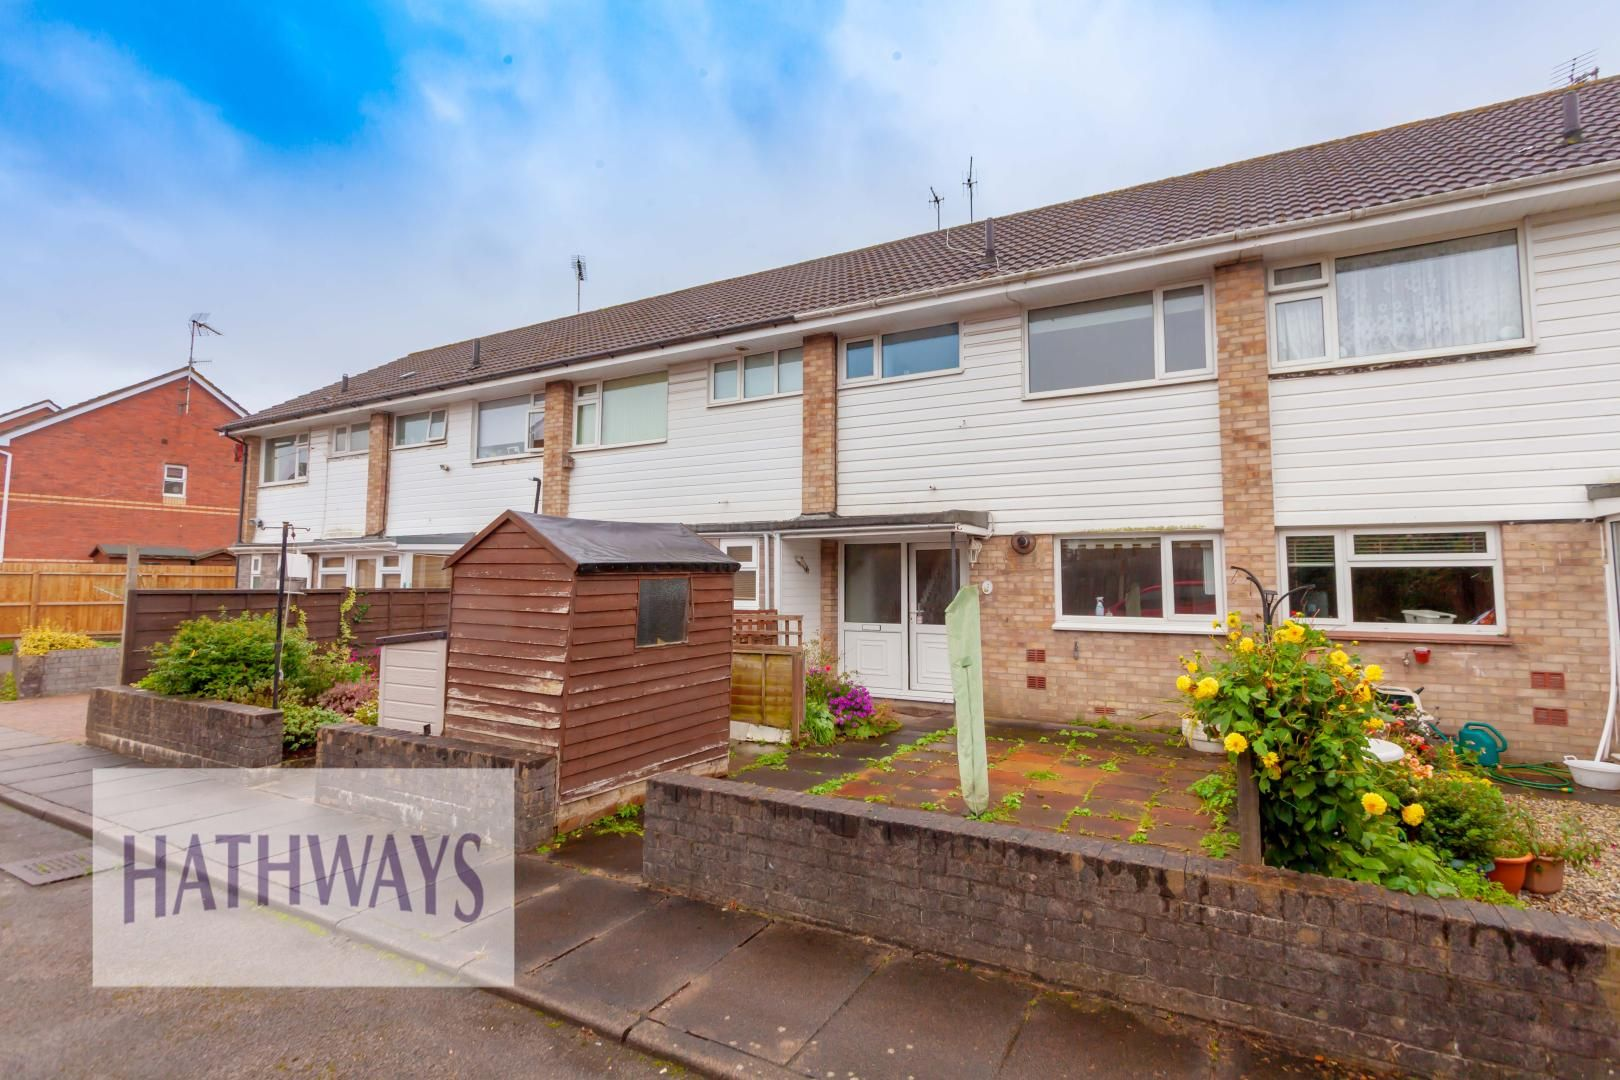 3 bed  for sale in Stokes Drive, NP18